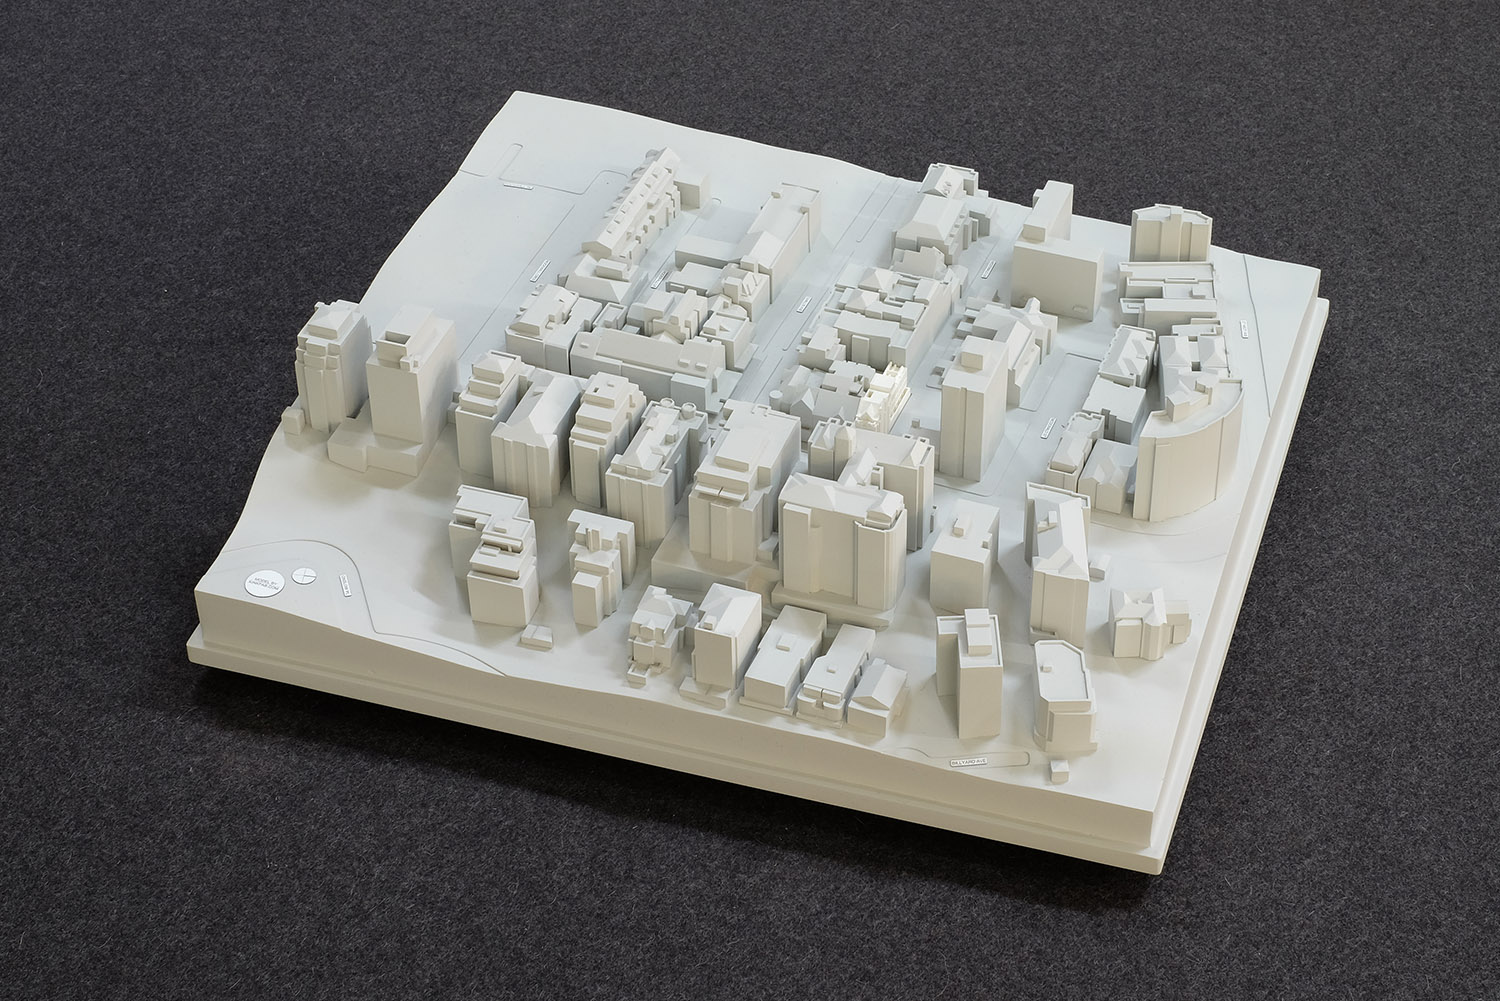 City of Sydney DA model 1_500 Archemy 1.jpg